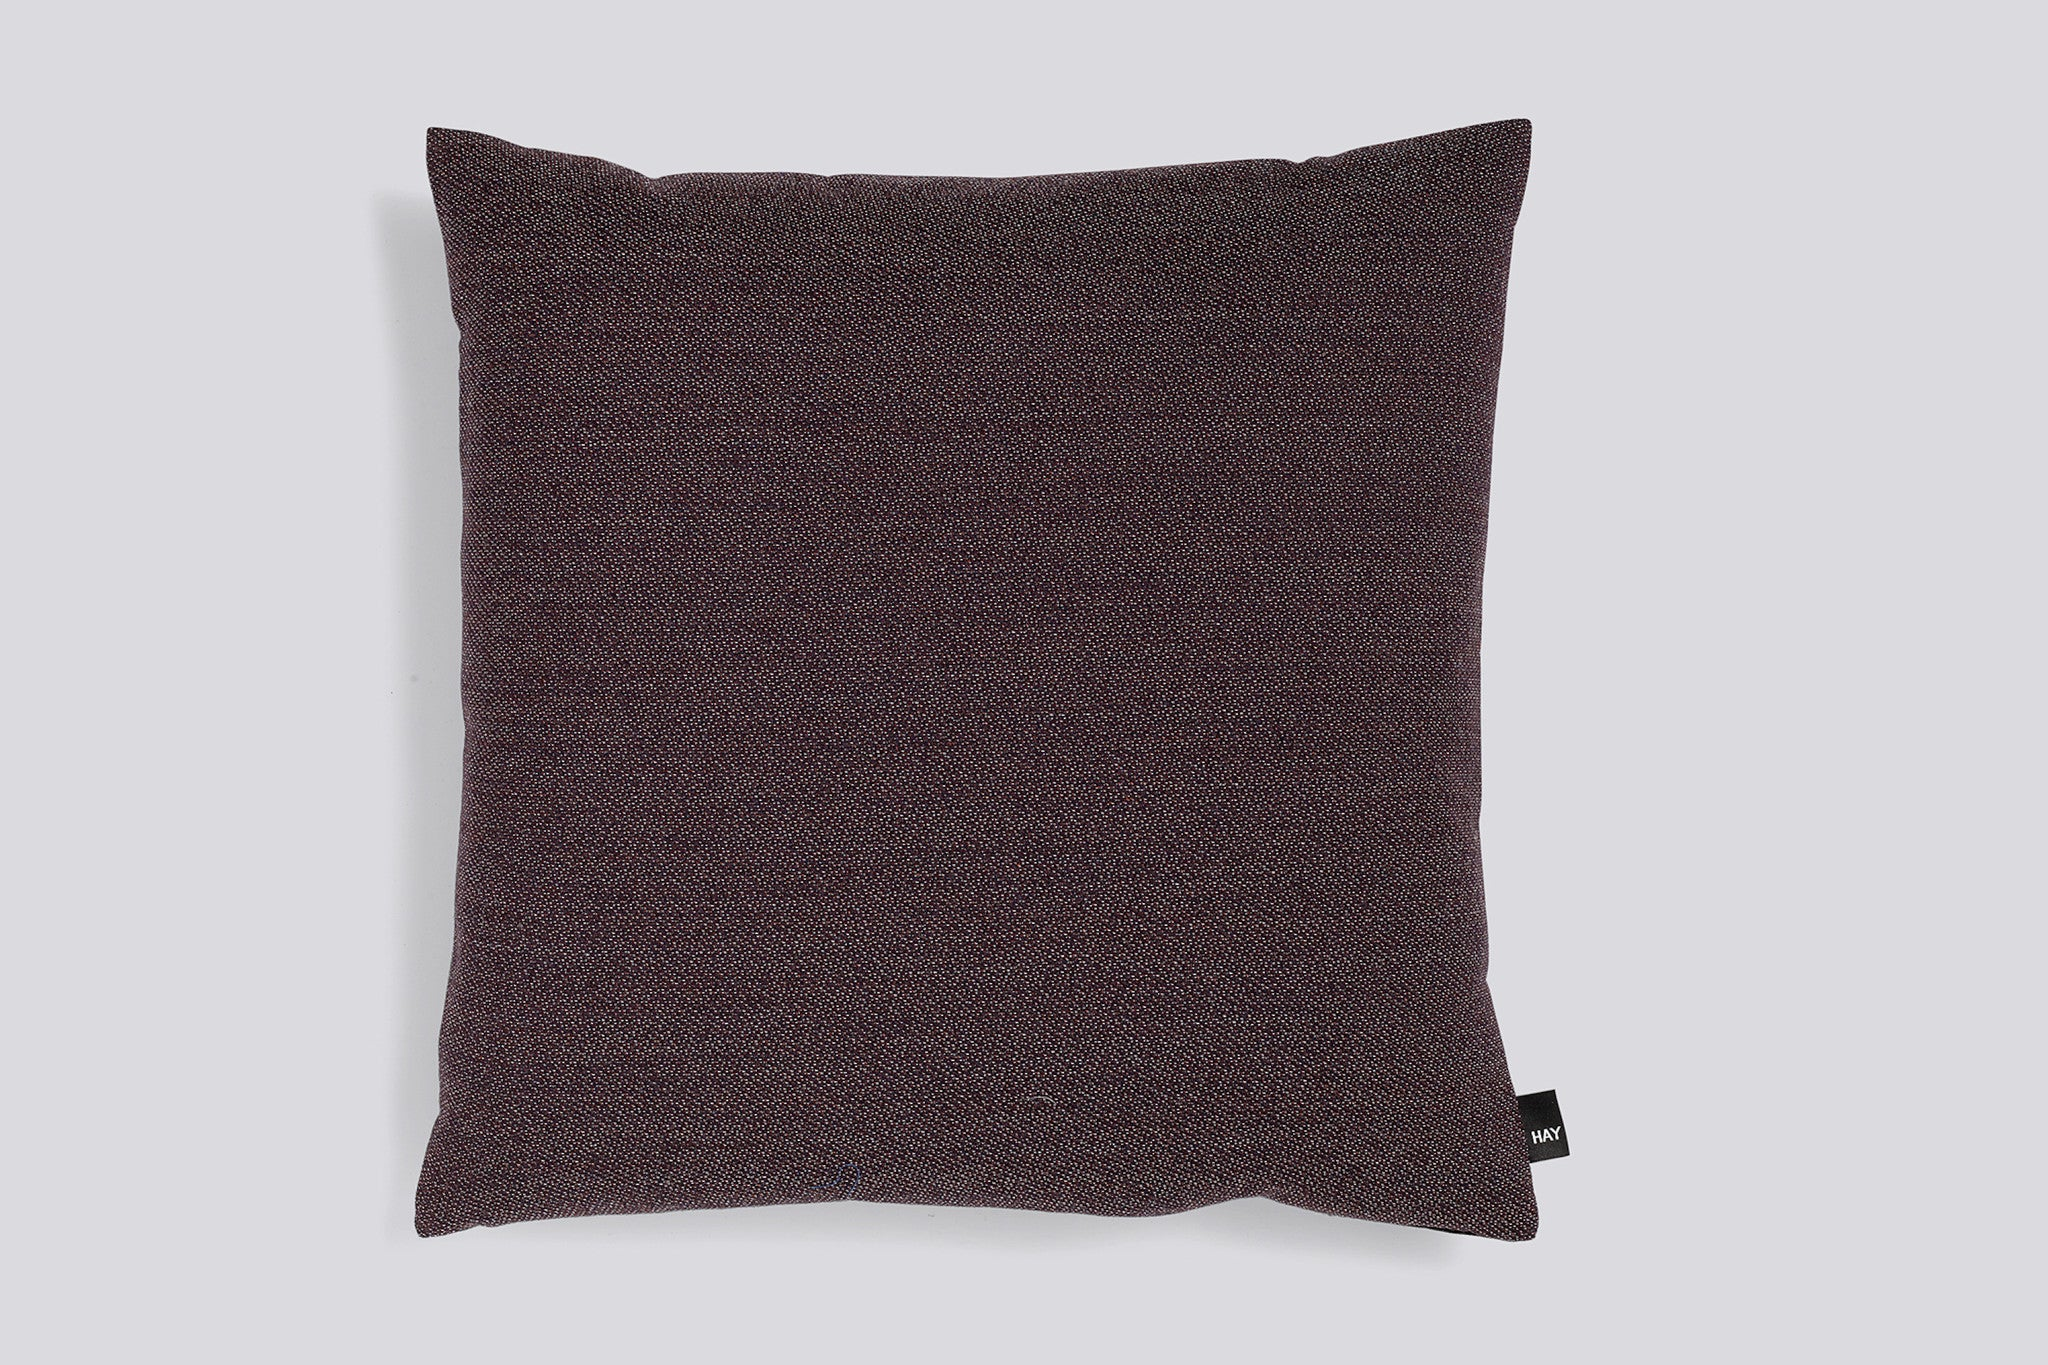 Eclectic Cushion, 50x50, Plum fra HAY